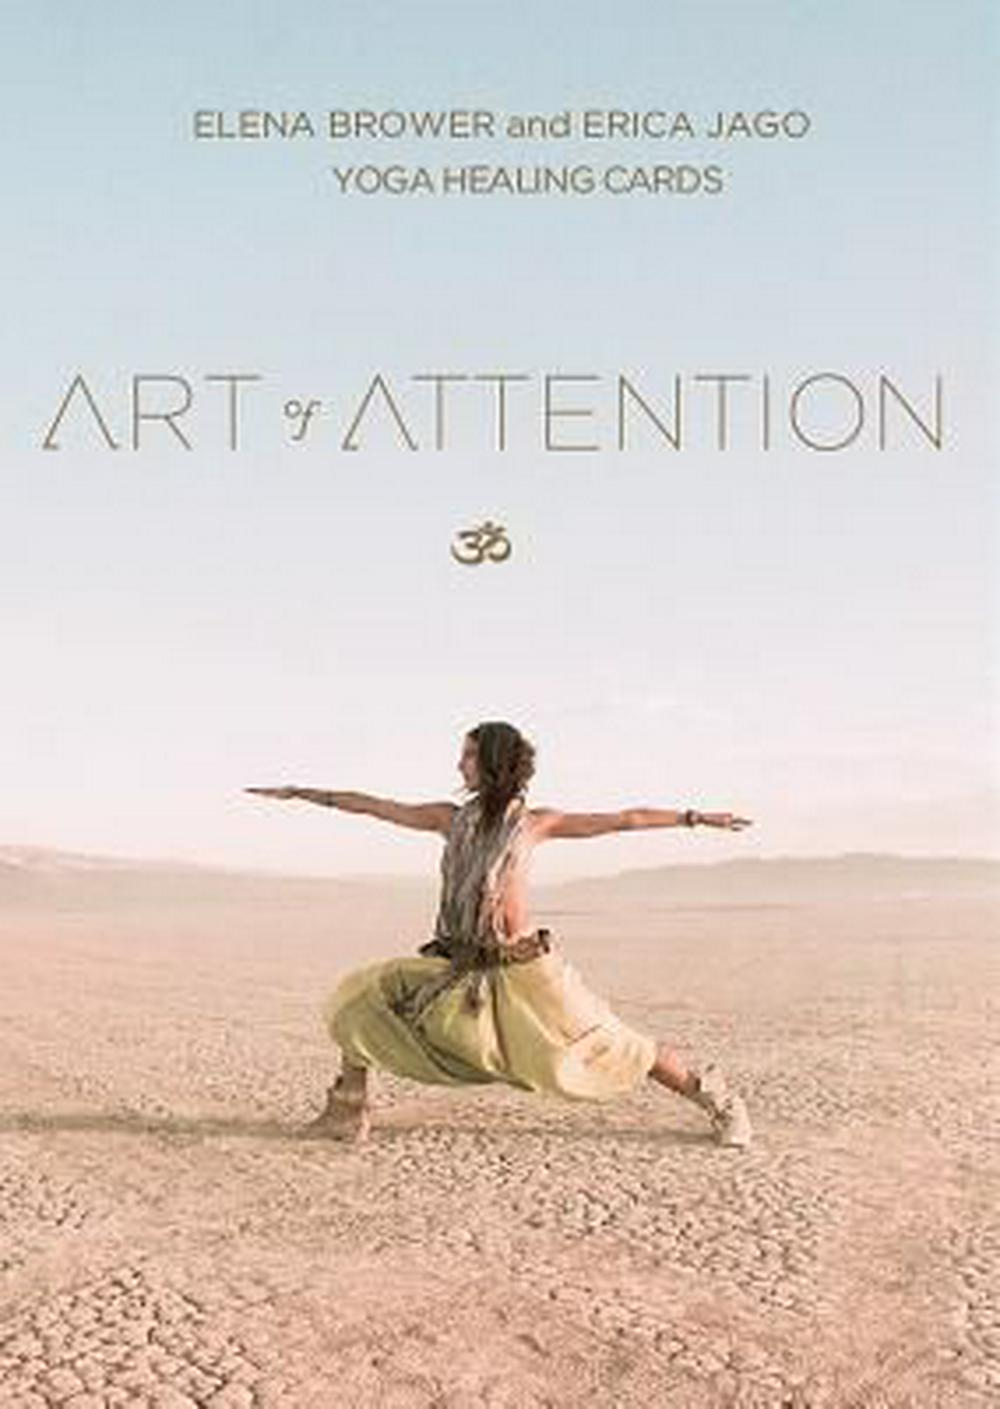 Art of Attention: Yoga Healing Cards by Elena Brower, ISBN: 9780986238109